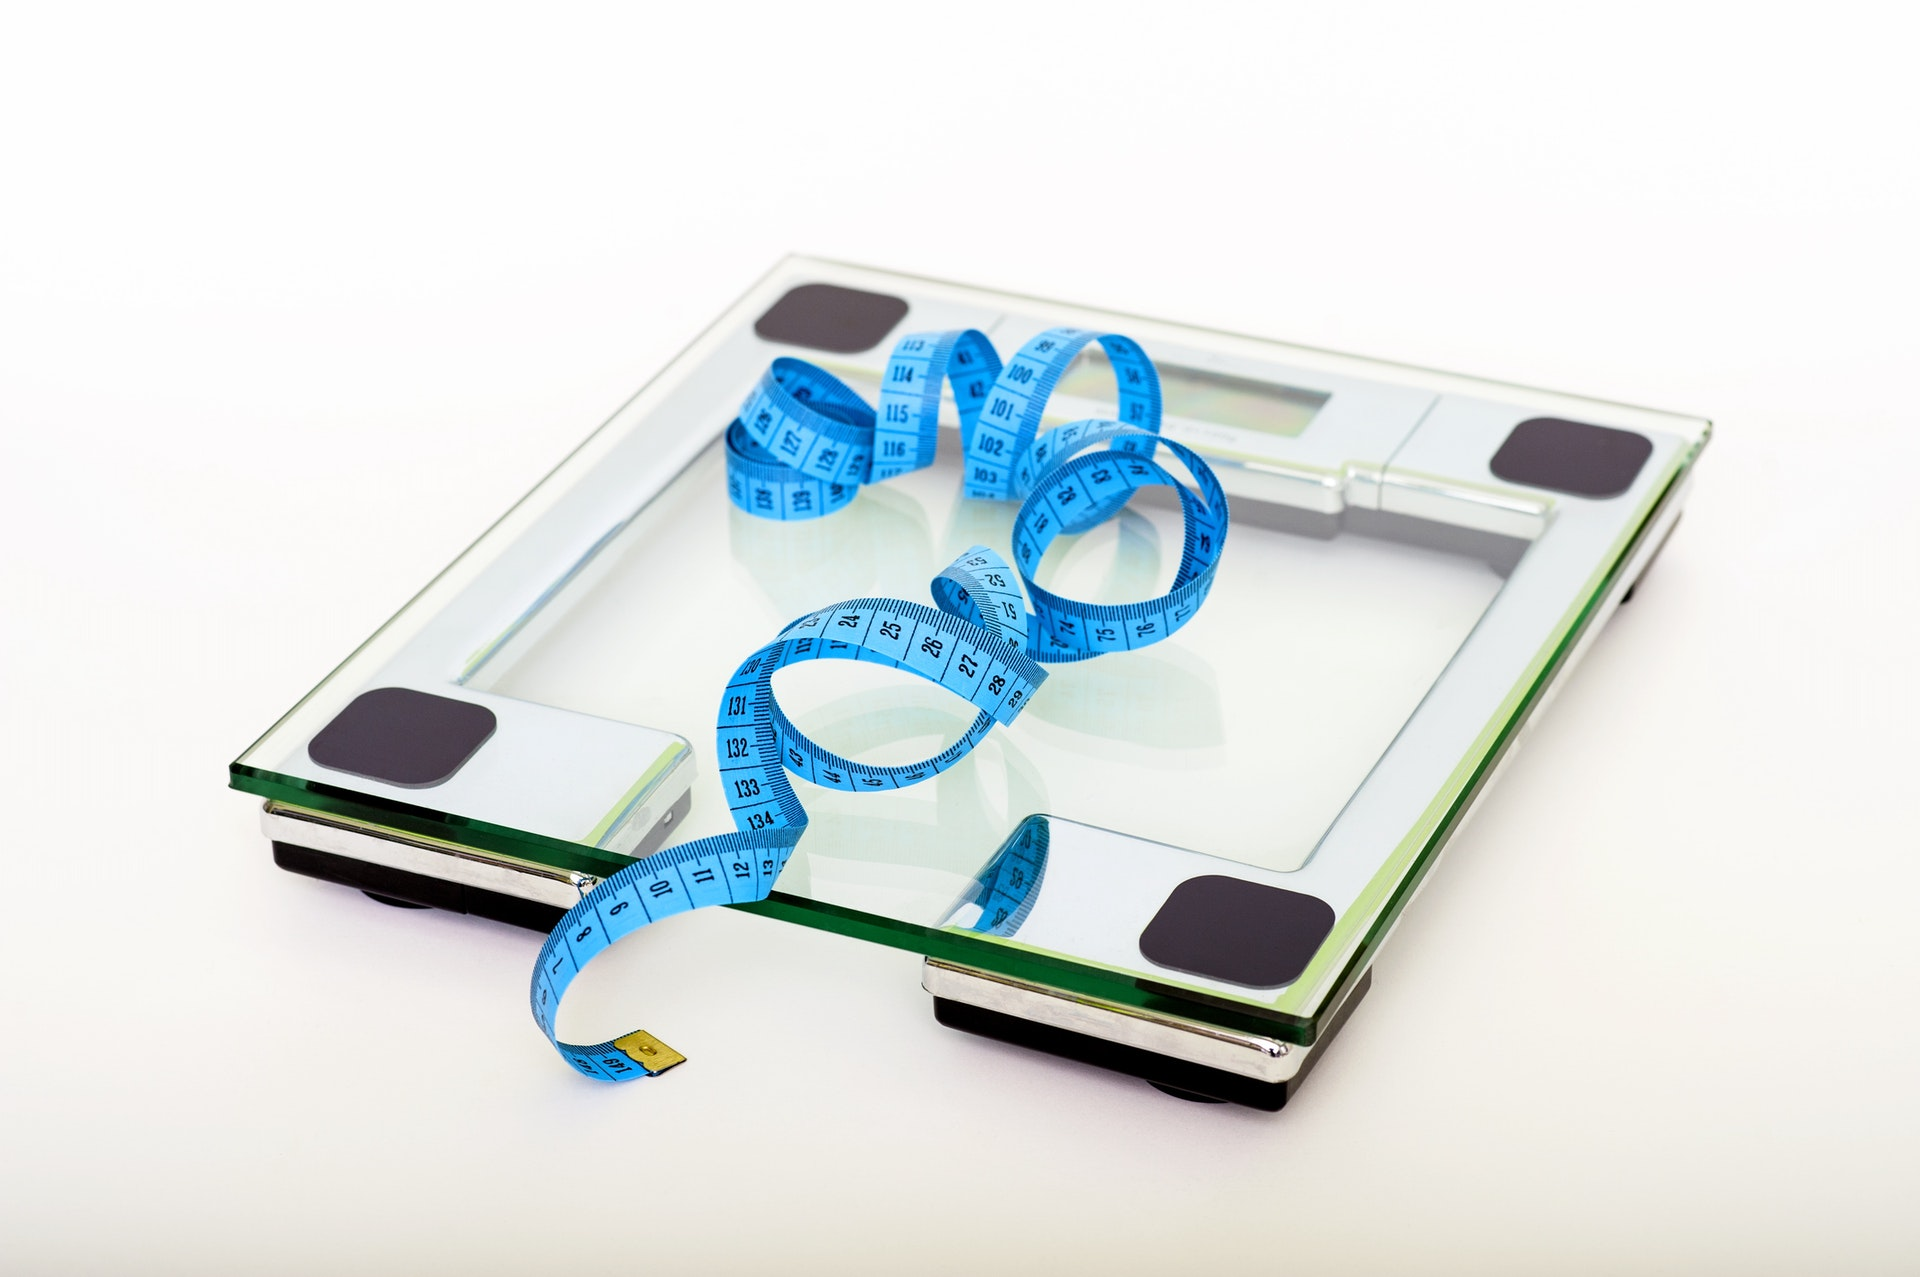 3 Weight Loss Mistakes That Hinder Progress